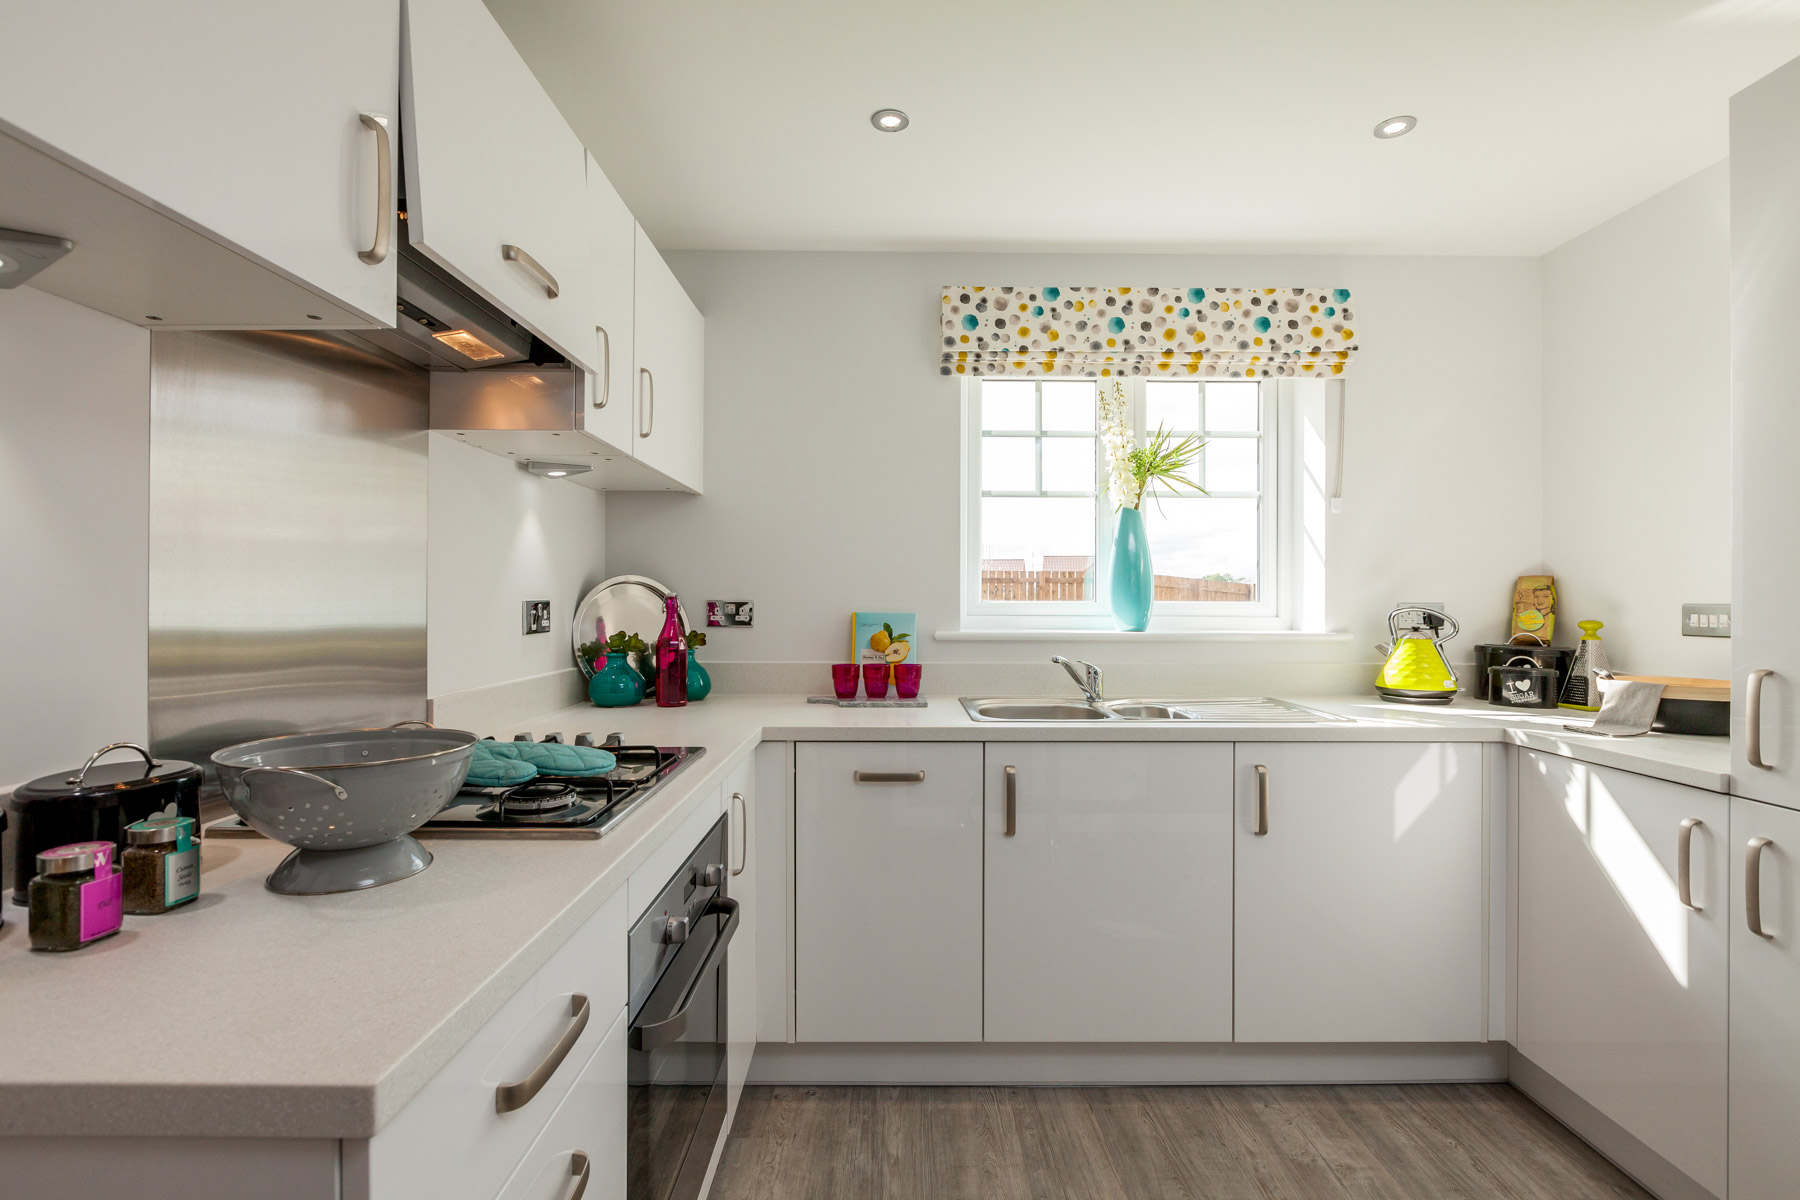 TW NY_Elderwood Park_PD32_Aldenham_Kitchen 2